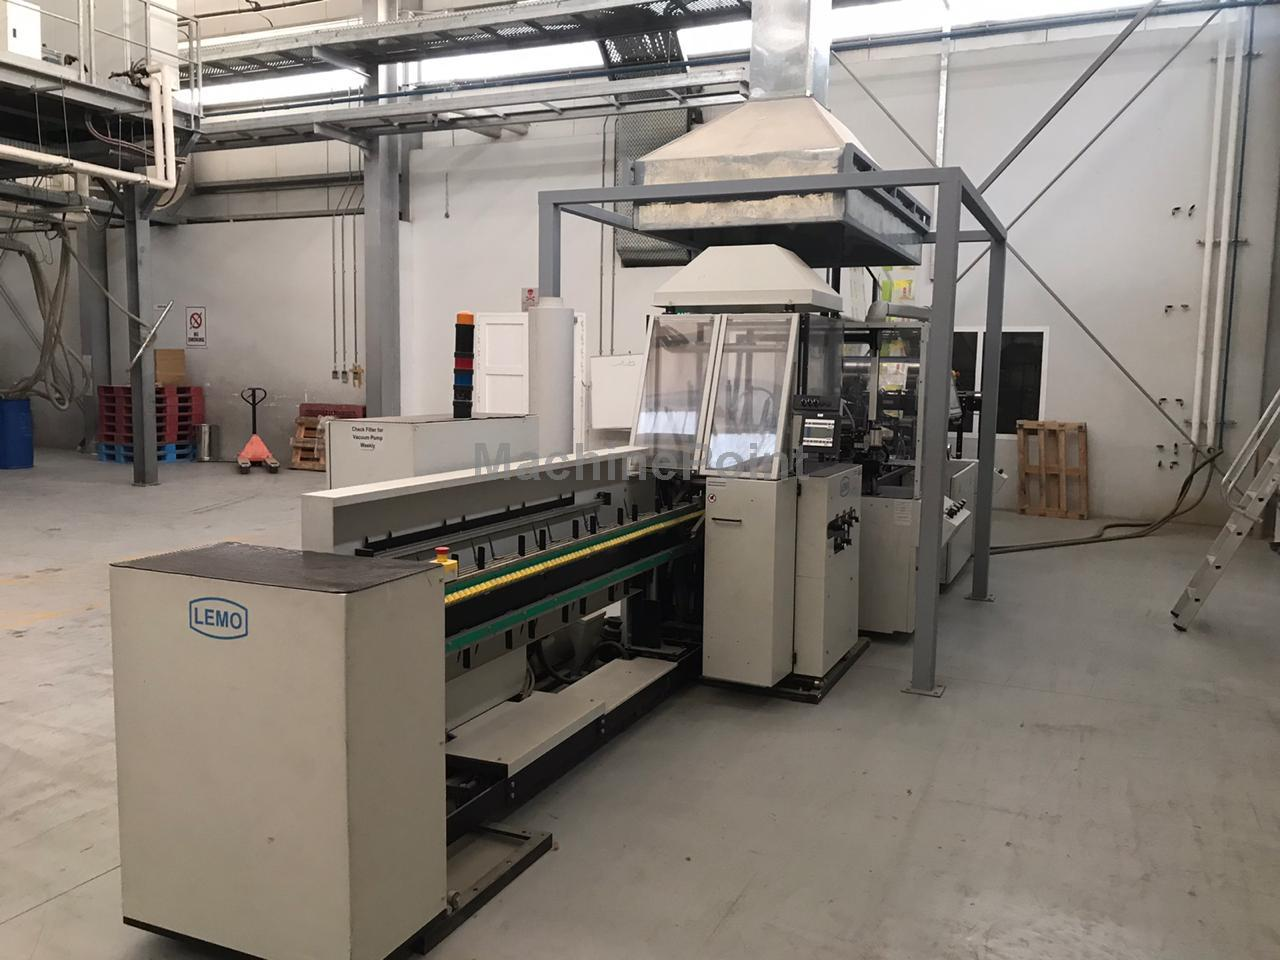 LEMO - STN 600 - Used machine - MachinePoint